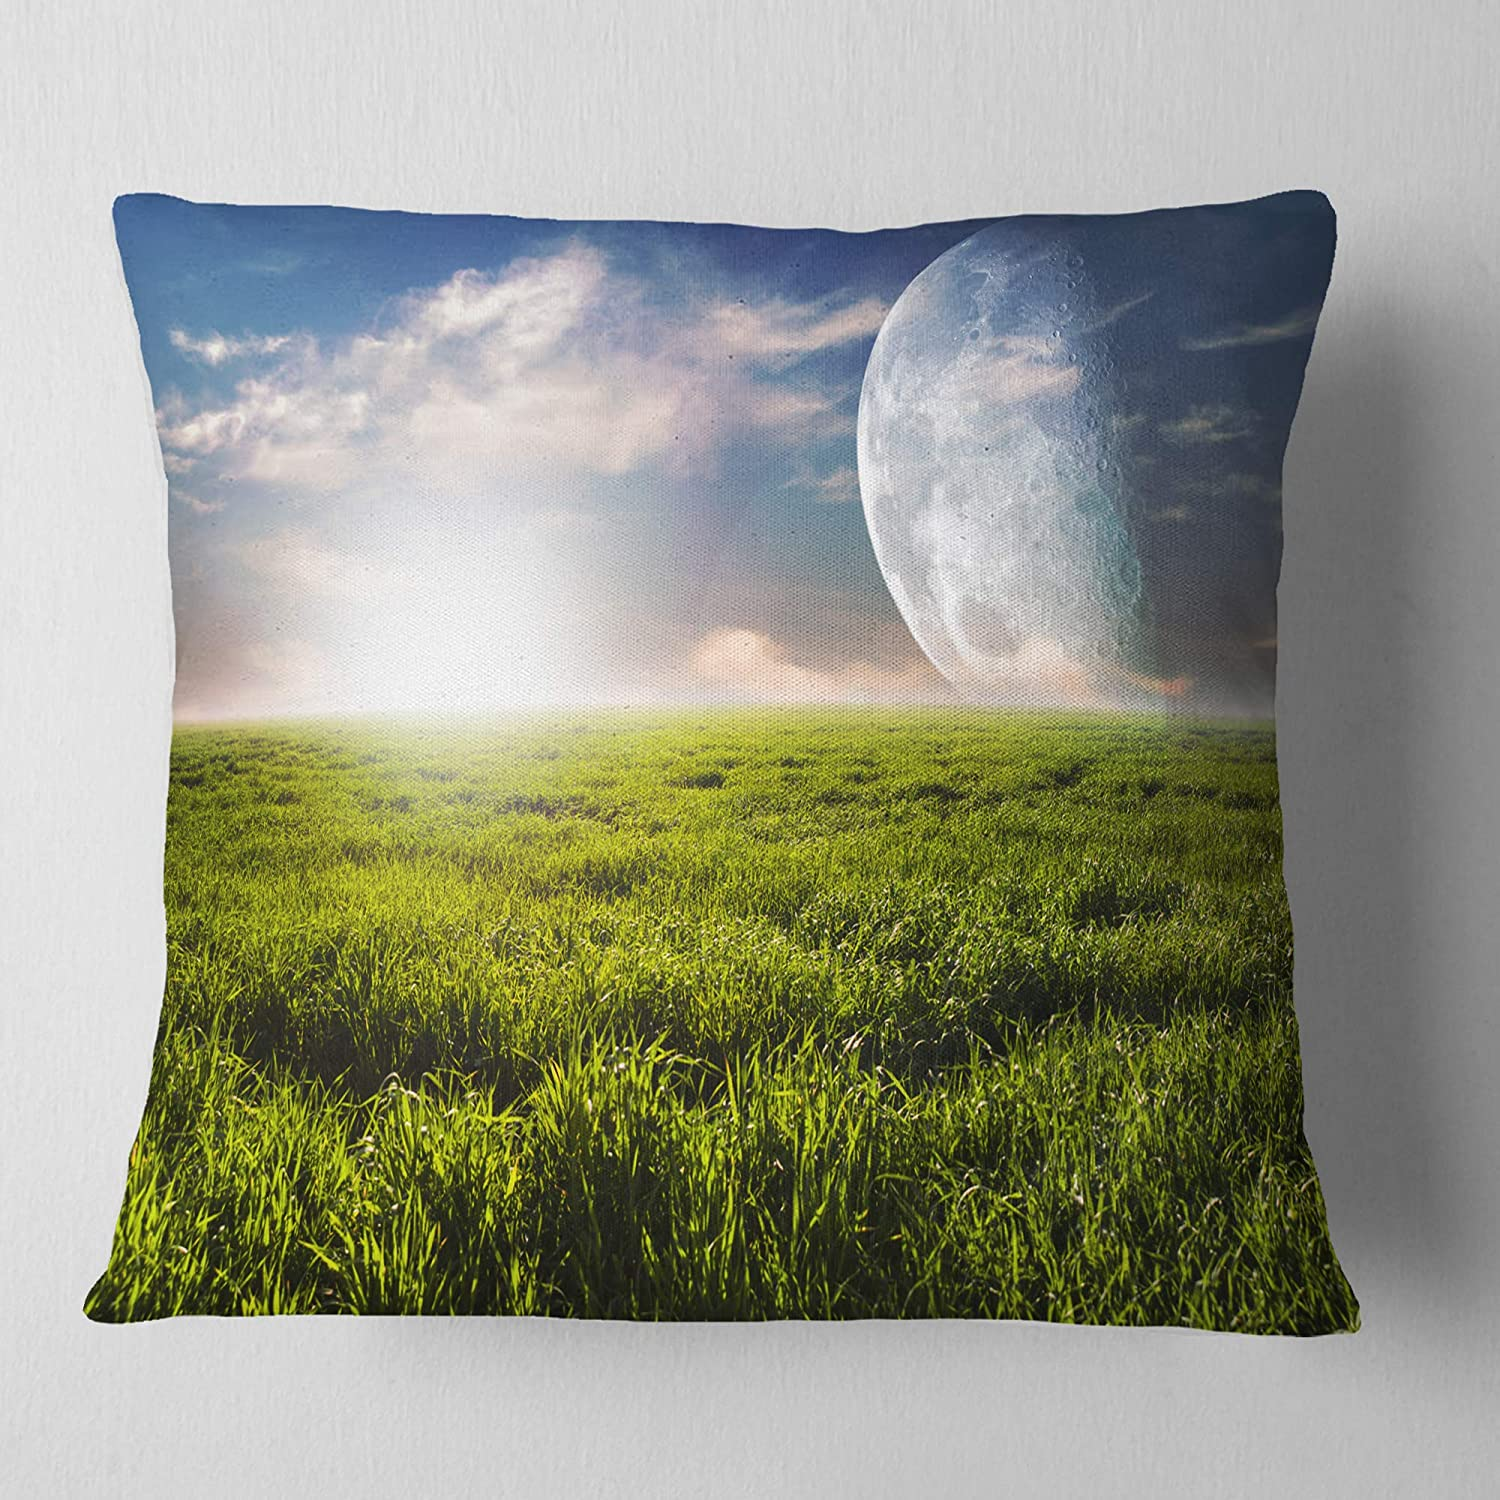 Designart CU14313-26-26 Green Field Under Bright Sunlight Landscape Printed Throw Cushion Pillow Cover for Living Room 26 in Sofa x 26 in.